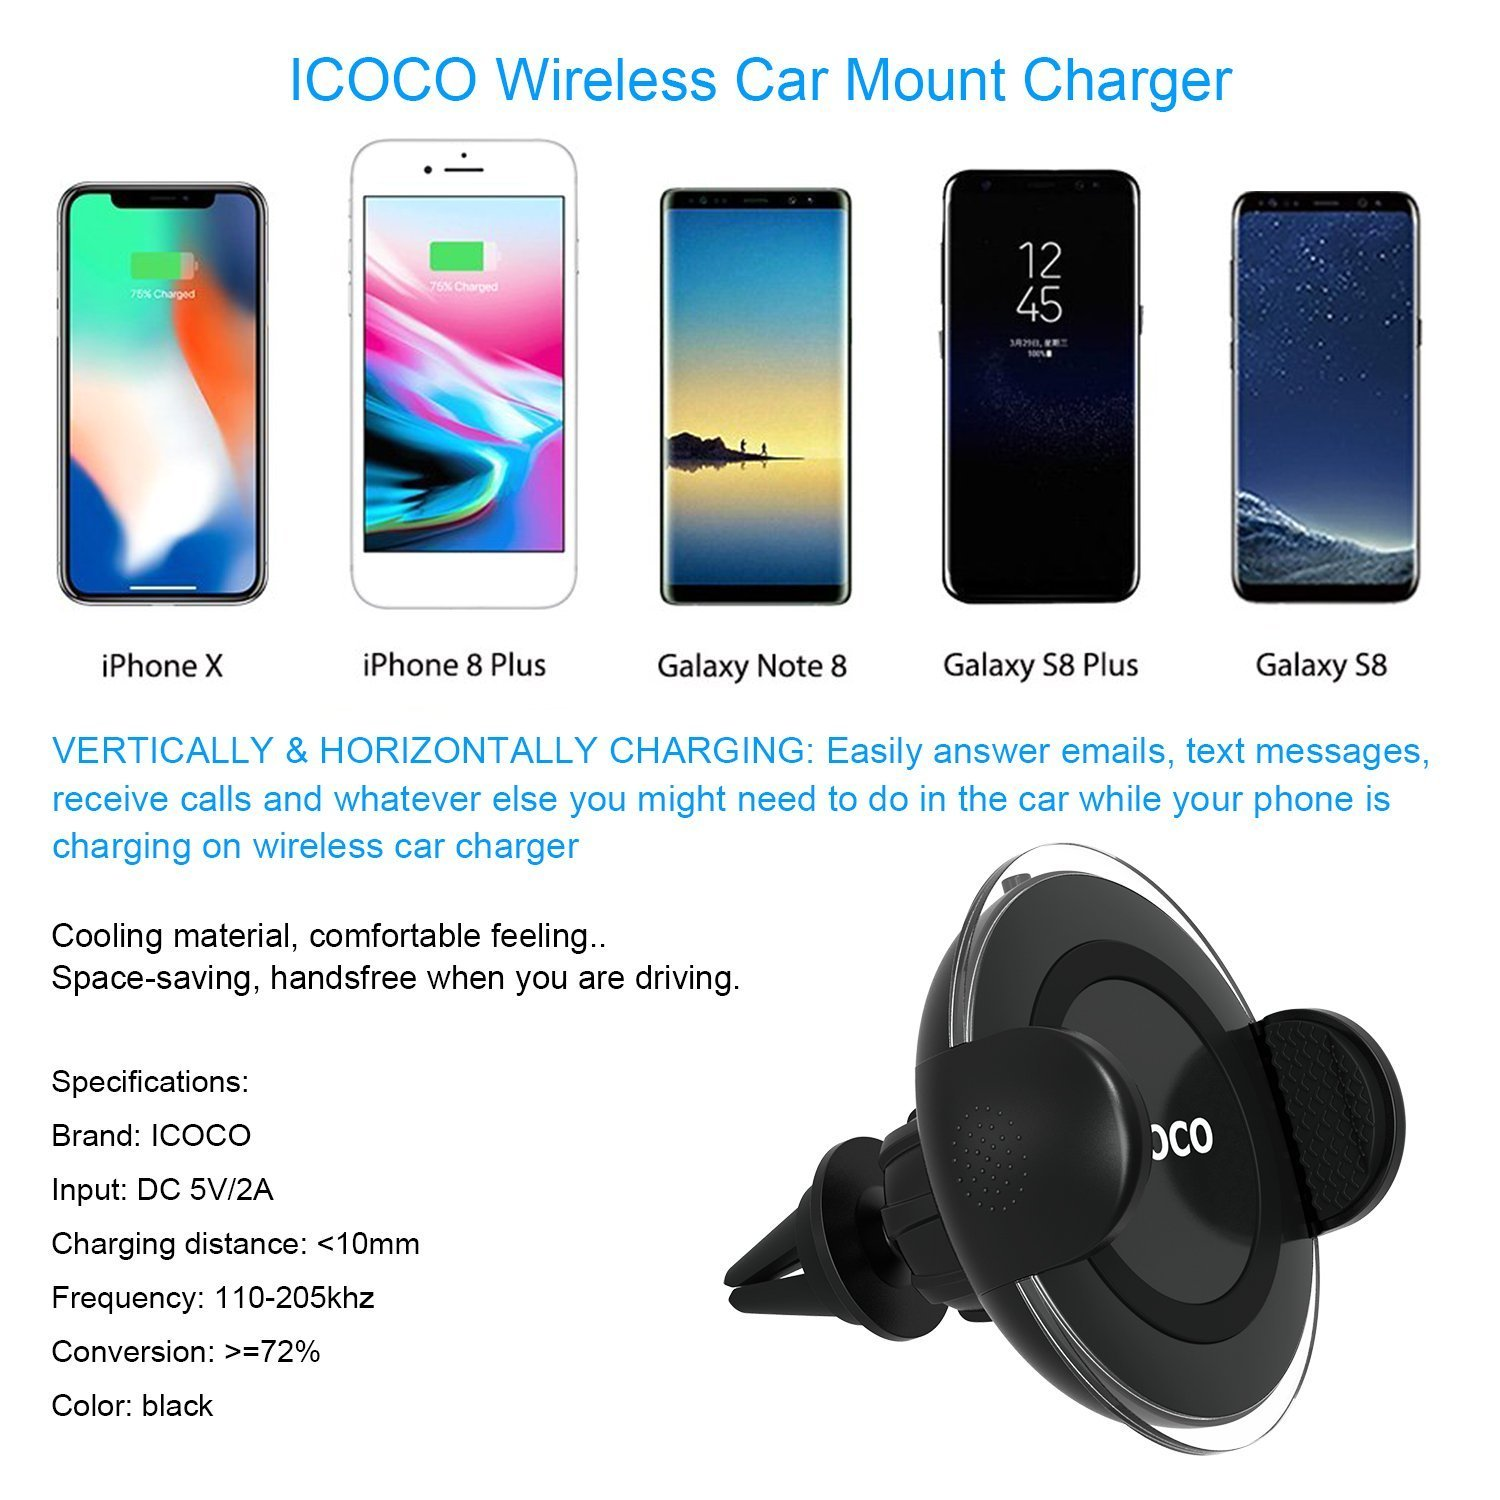 Caricatore Wireless Auto rapido, Caricabatteria Wireless Auto, Universale Supporto Griglia di Ventilazione per Galaxy Note 8/5 S8/S8 Plus S7/S7 Edge S6 Edge Plus, iPhone X / 8 /8 Plus